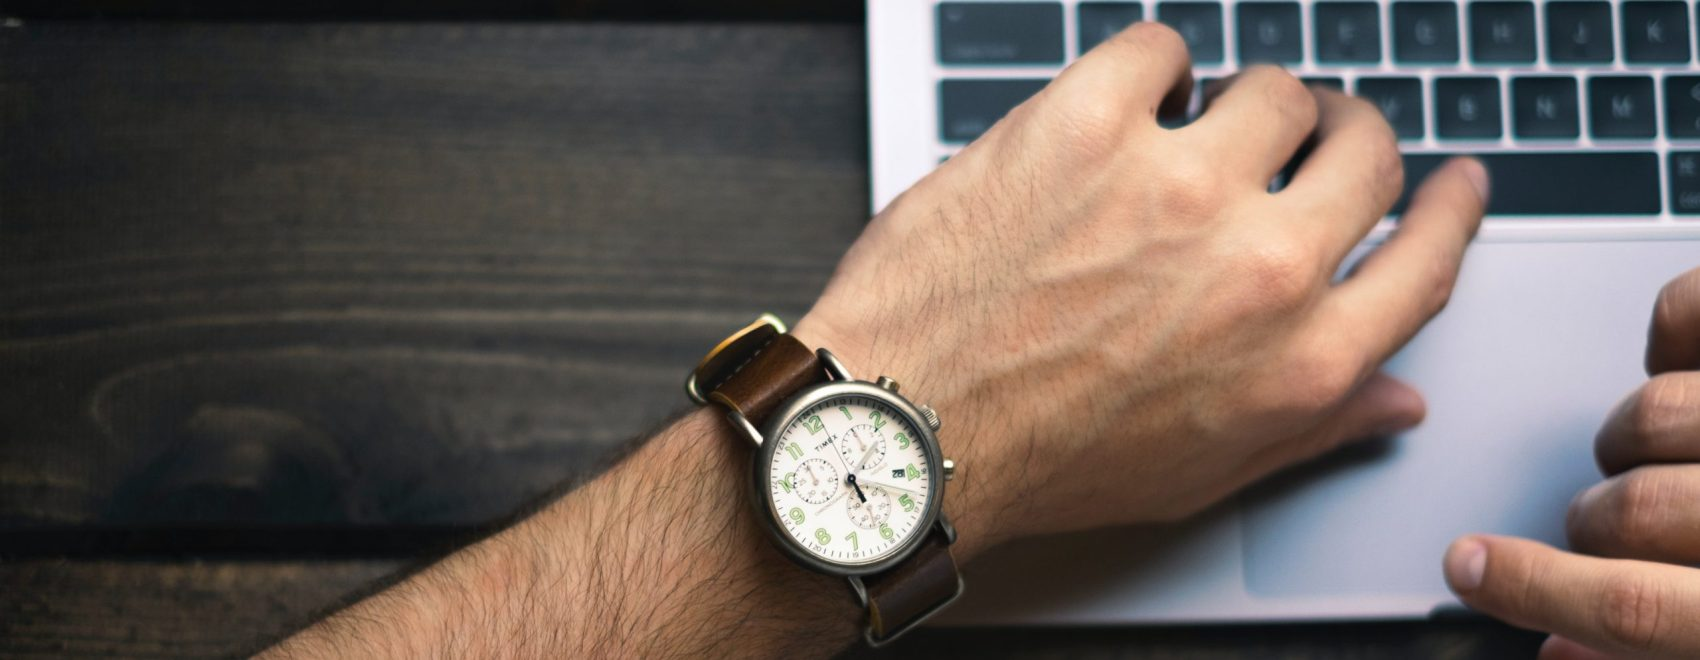 Image of watch on arm and laptop